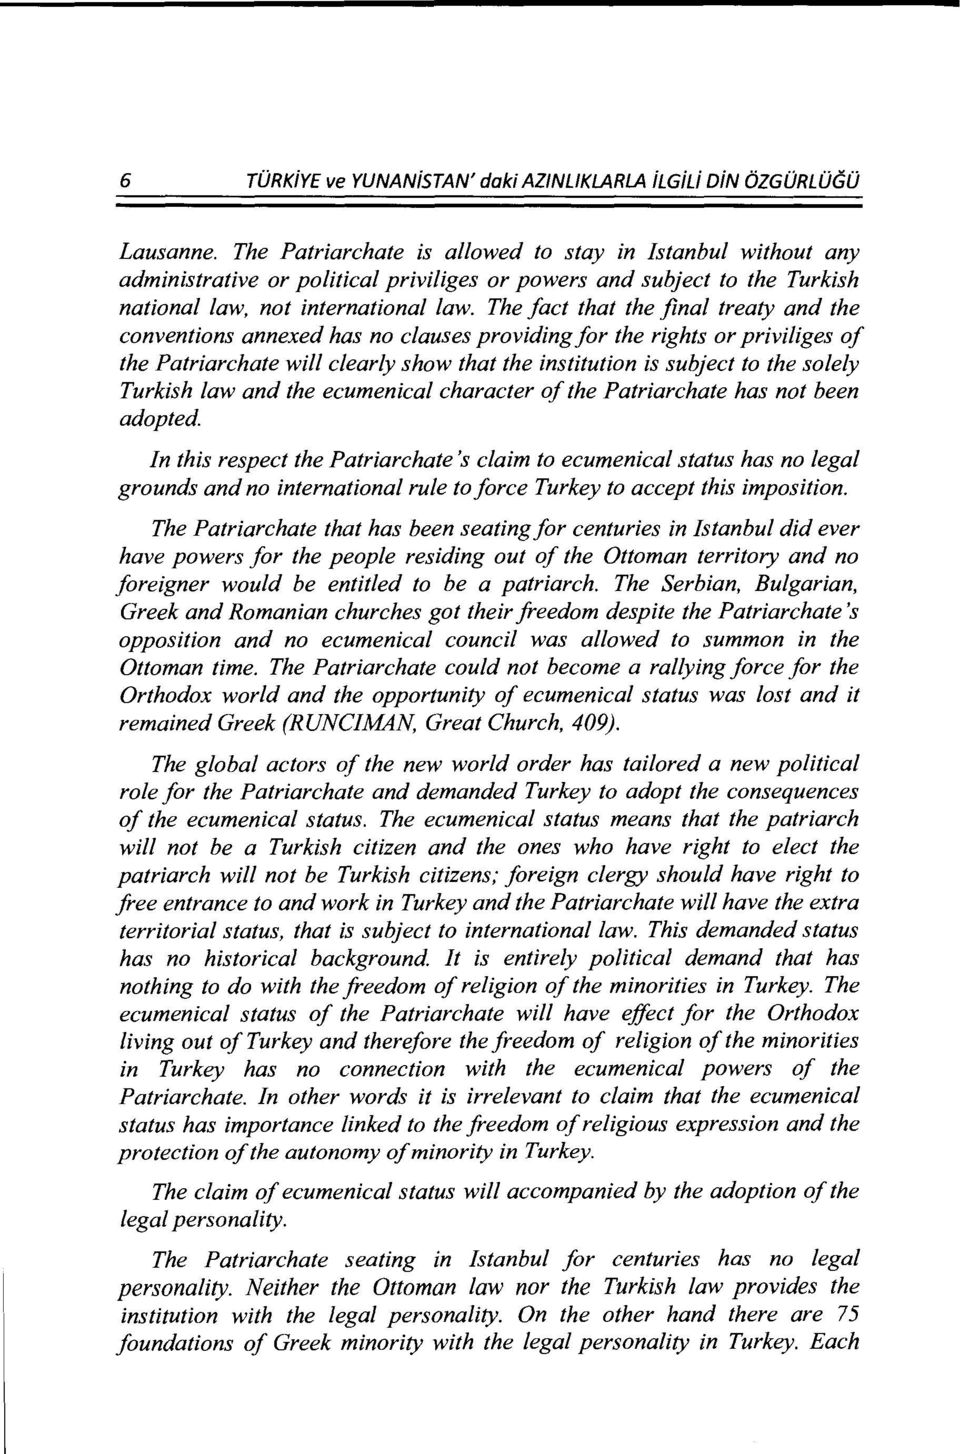 The fact that the final treaty and the conventions annexed has no clauses providing for the rights or priviliges of the Patriarchate will clearly show that the institution is subject to the solely